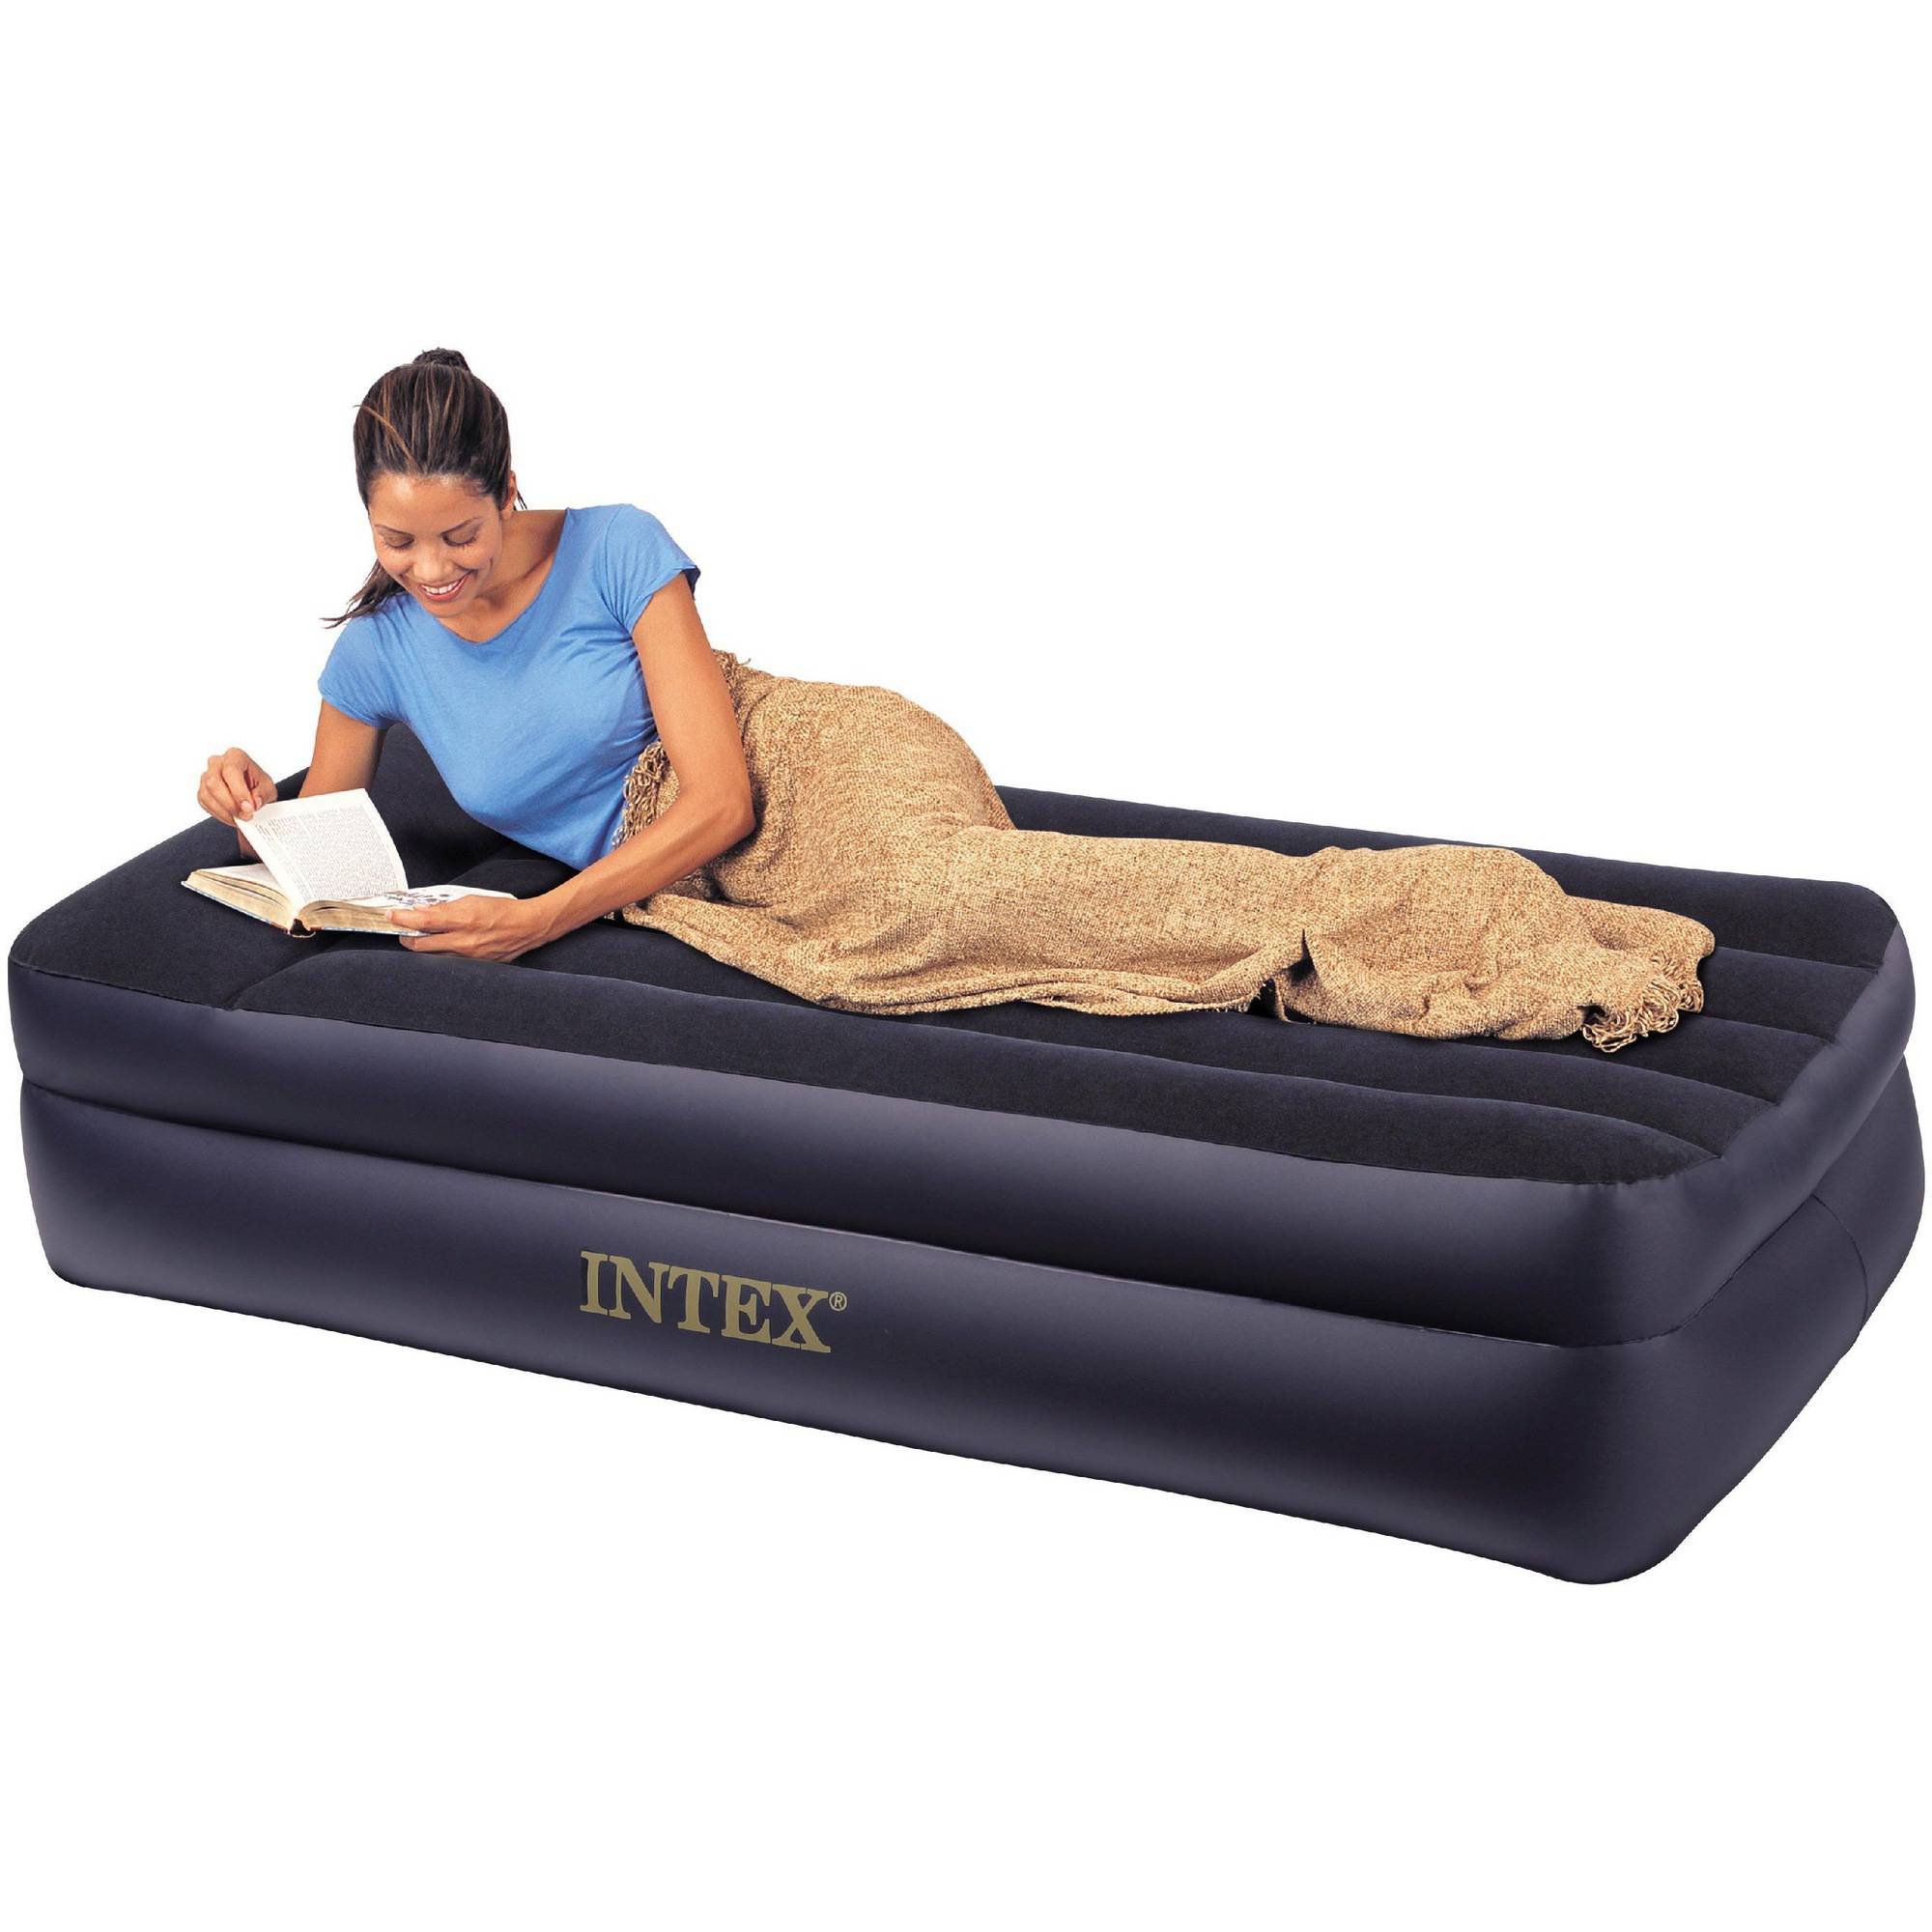 Bed rest pillow walmart - Intex Deluxe Twin Pillow Rest Raised Soft Flocked Air Mattress Pump 67731e Walmart Com